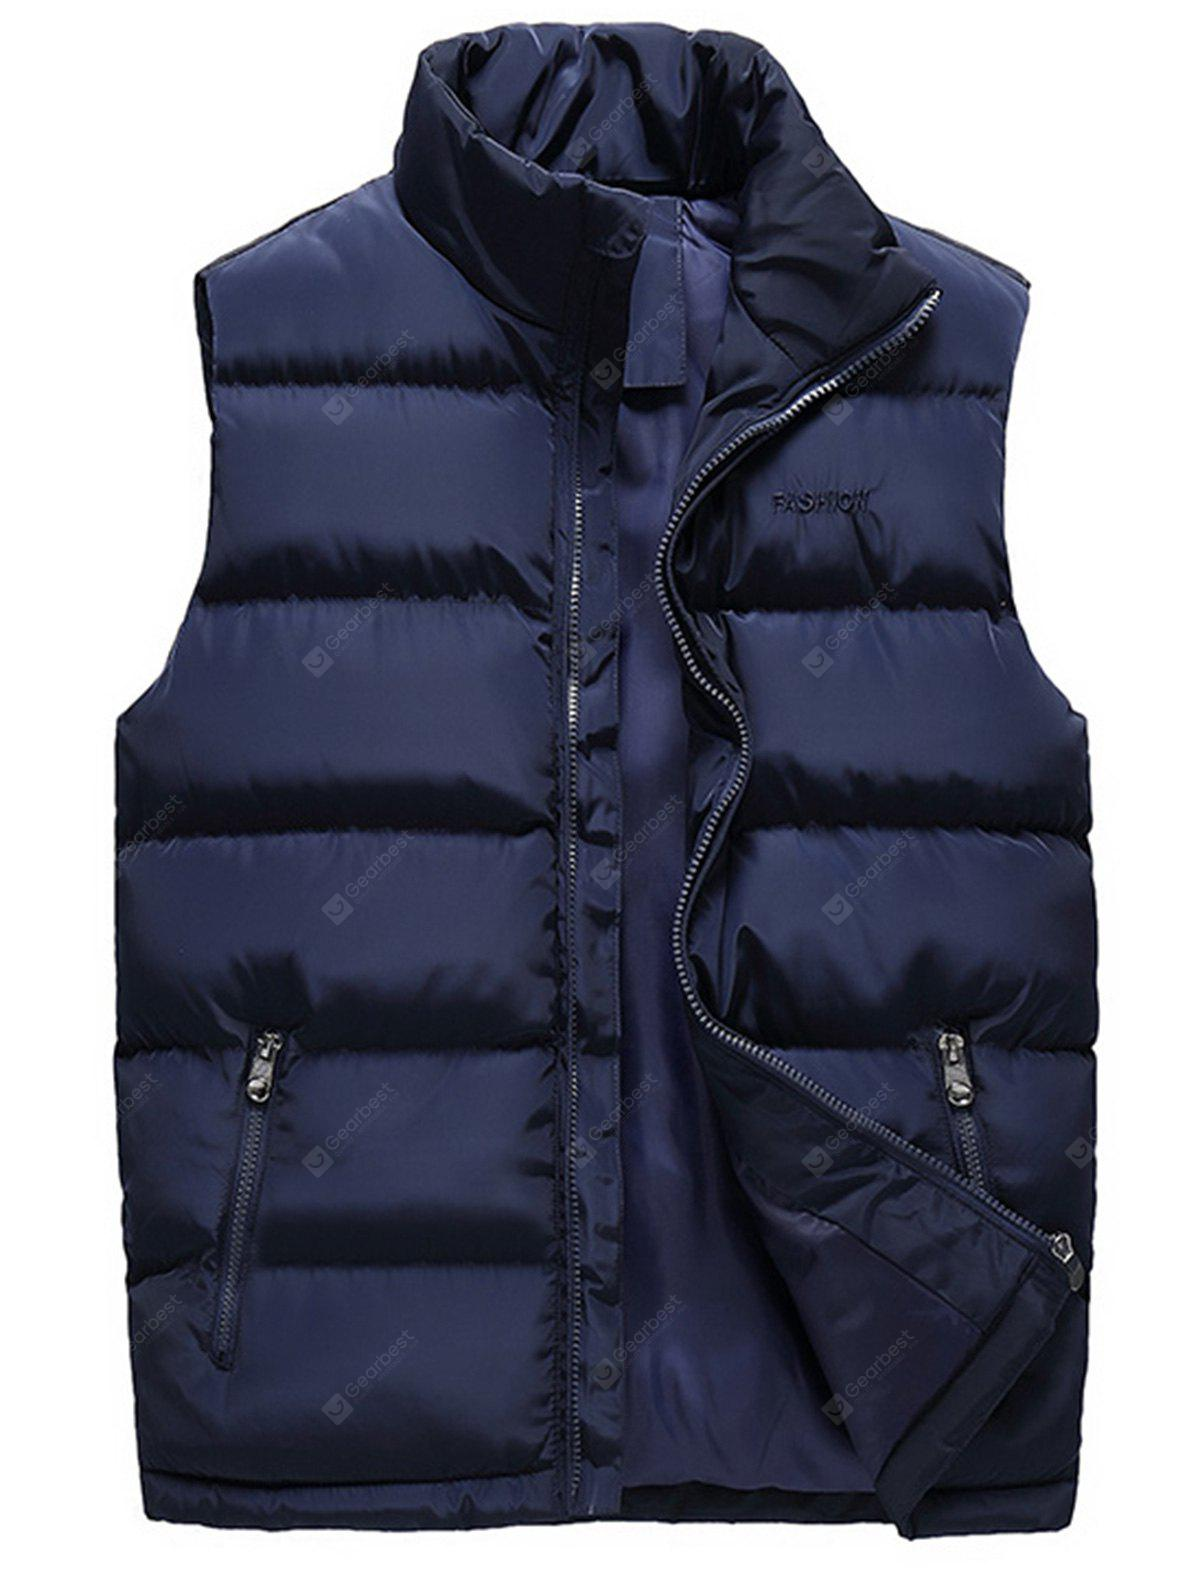 Stand Collar Embroidered Zip Up Padded Waistcoat